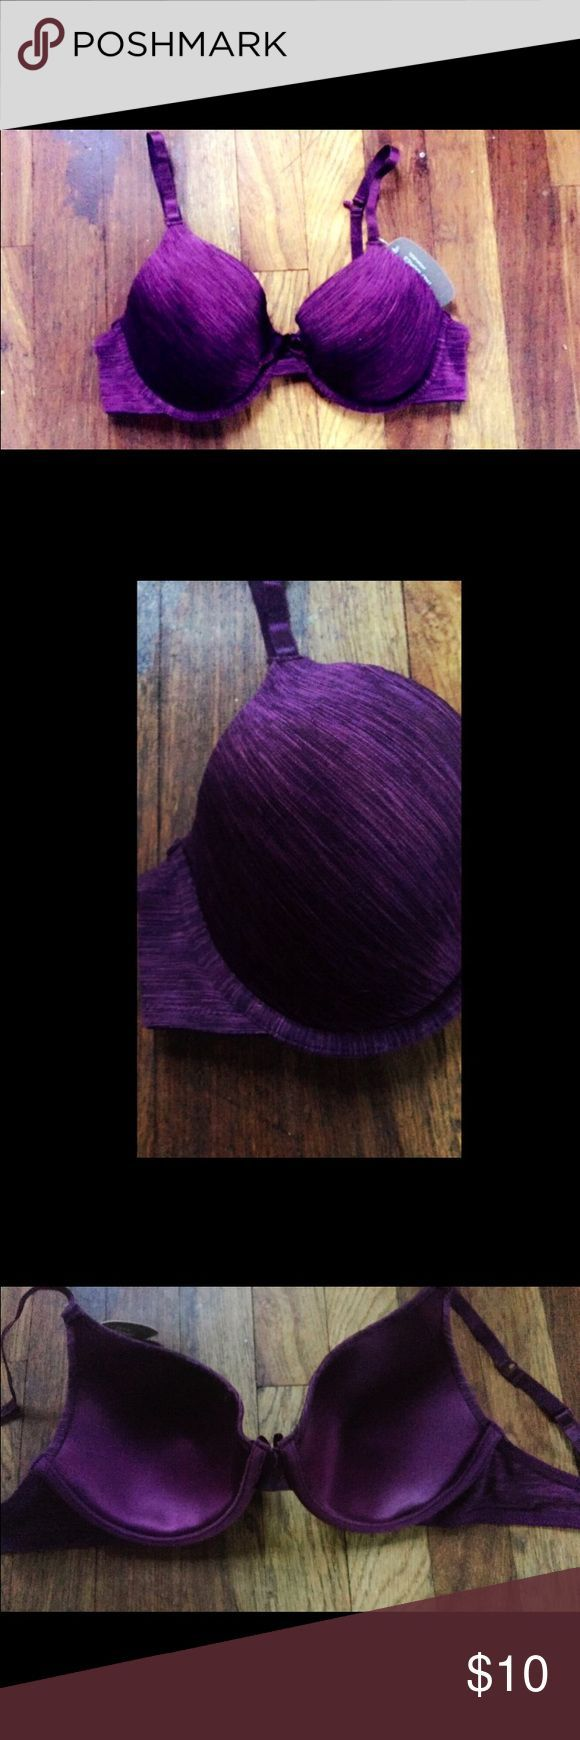 Beautiful Purple Bra Bra is brand new with tags, just a little too big for me. I believe it was purchased from aerie but I am not positive since it was a gift. Not a push up bra but does have padding. Intimates & Sleepwear Bras - intimate, full figure lingerie, m style intimates *sponsored https://www.pinterest.com/lingerie_yes/ https://www.pinterest.com/explore/intimates/ https://www.pinterest.com/lingerie_yes/christmas-lingerie/ http://www.bhldn.com/shop-sale-lingerie/